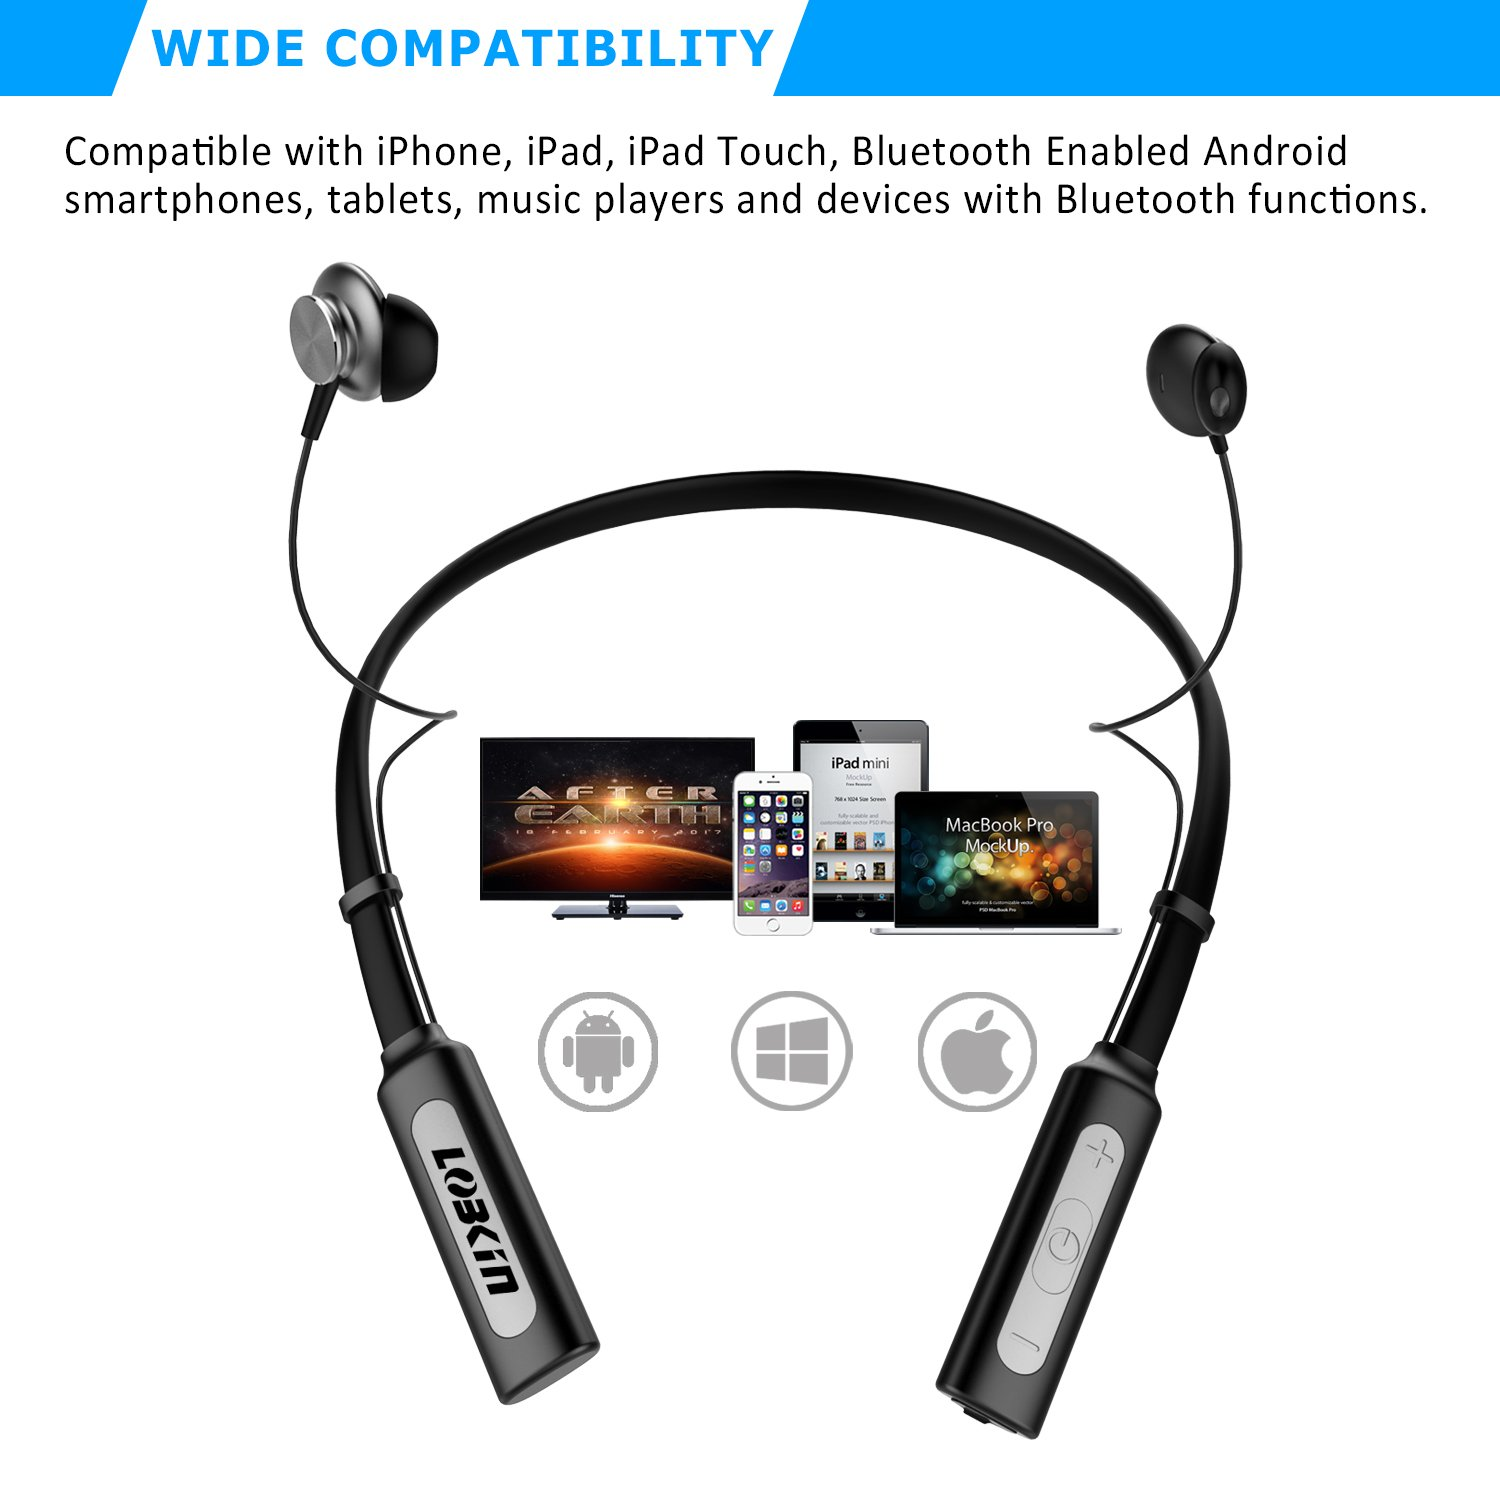 Ecandy Wireless Neckband Bluetooth Headset V4.1 Stereo Earbuds Vibration Sports Handsfree Headphone with Microphone,Magnet Attraction Compatible for Most Bluetooth Devices